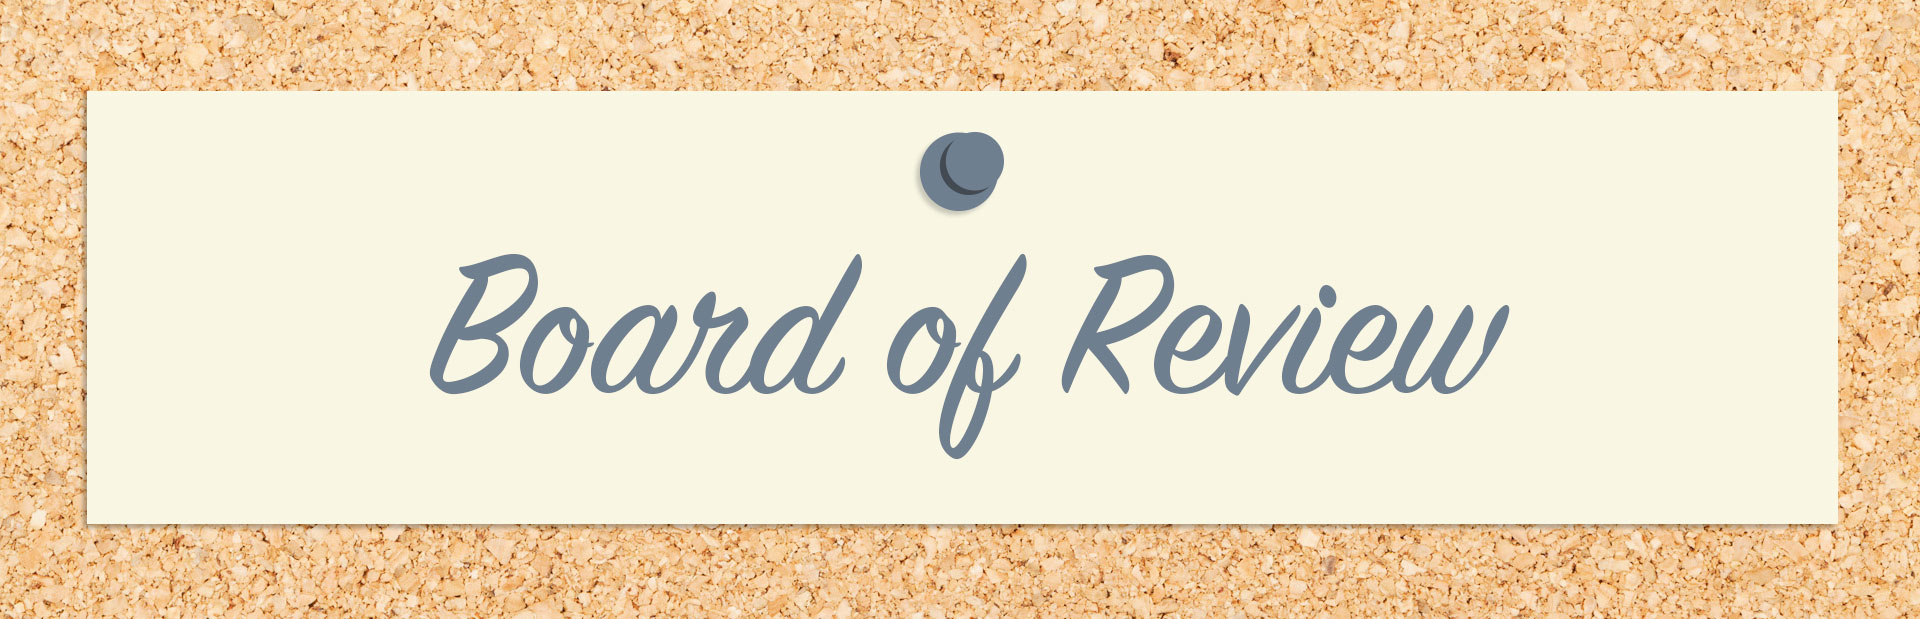 Bulletin-board-board-of-review